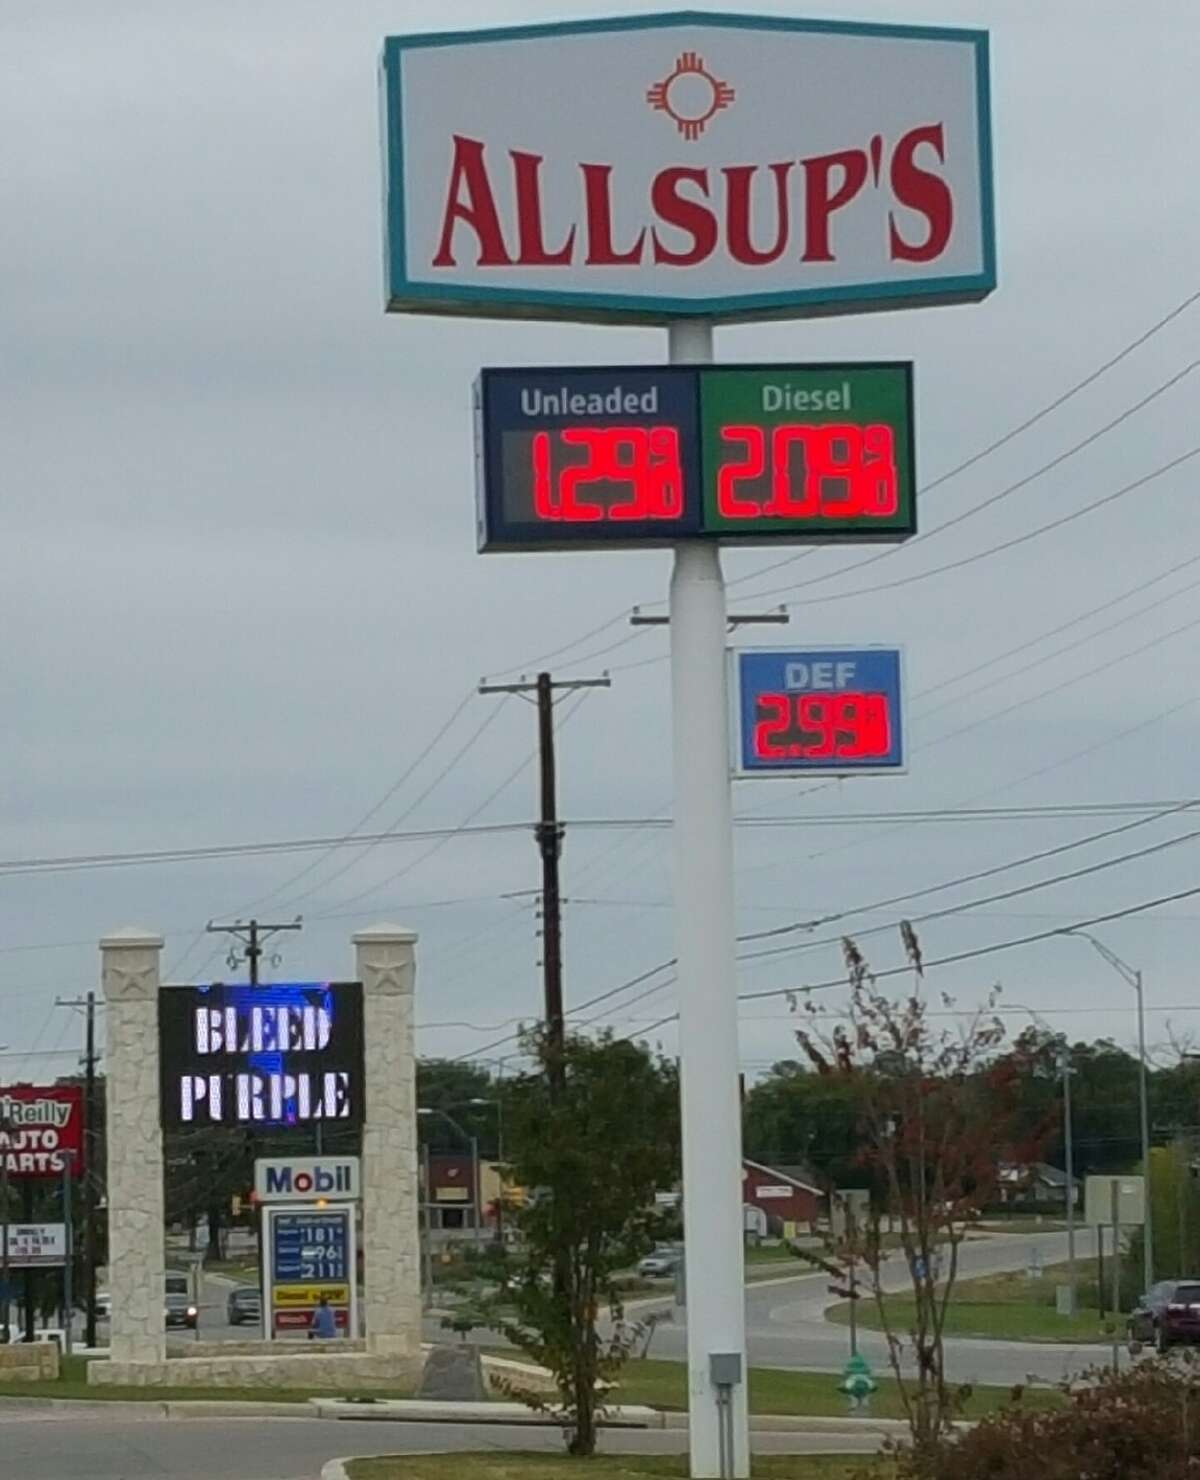 A gas station located at 2725 W Washington St. in Stephenville, Texas sells a gallon of unleaded gasoline for $1.29 on Nov. 9, 2015.